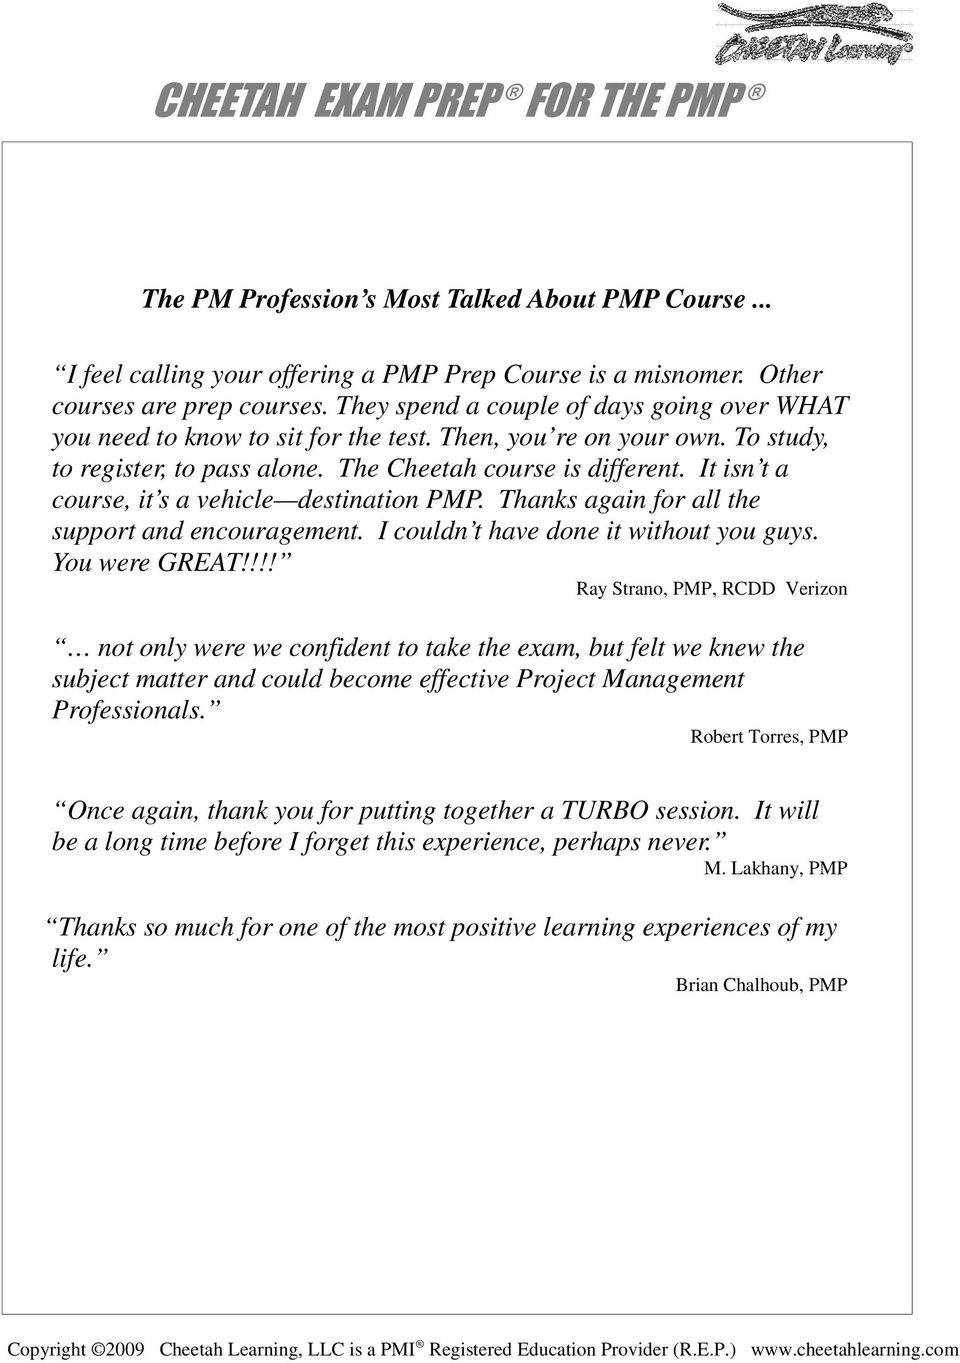 It isn t a course, it s a vehicle destination PMP. Thanks again for all the support and encouragement. I couldn t have done it without you guys. You were GREAT!